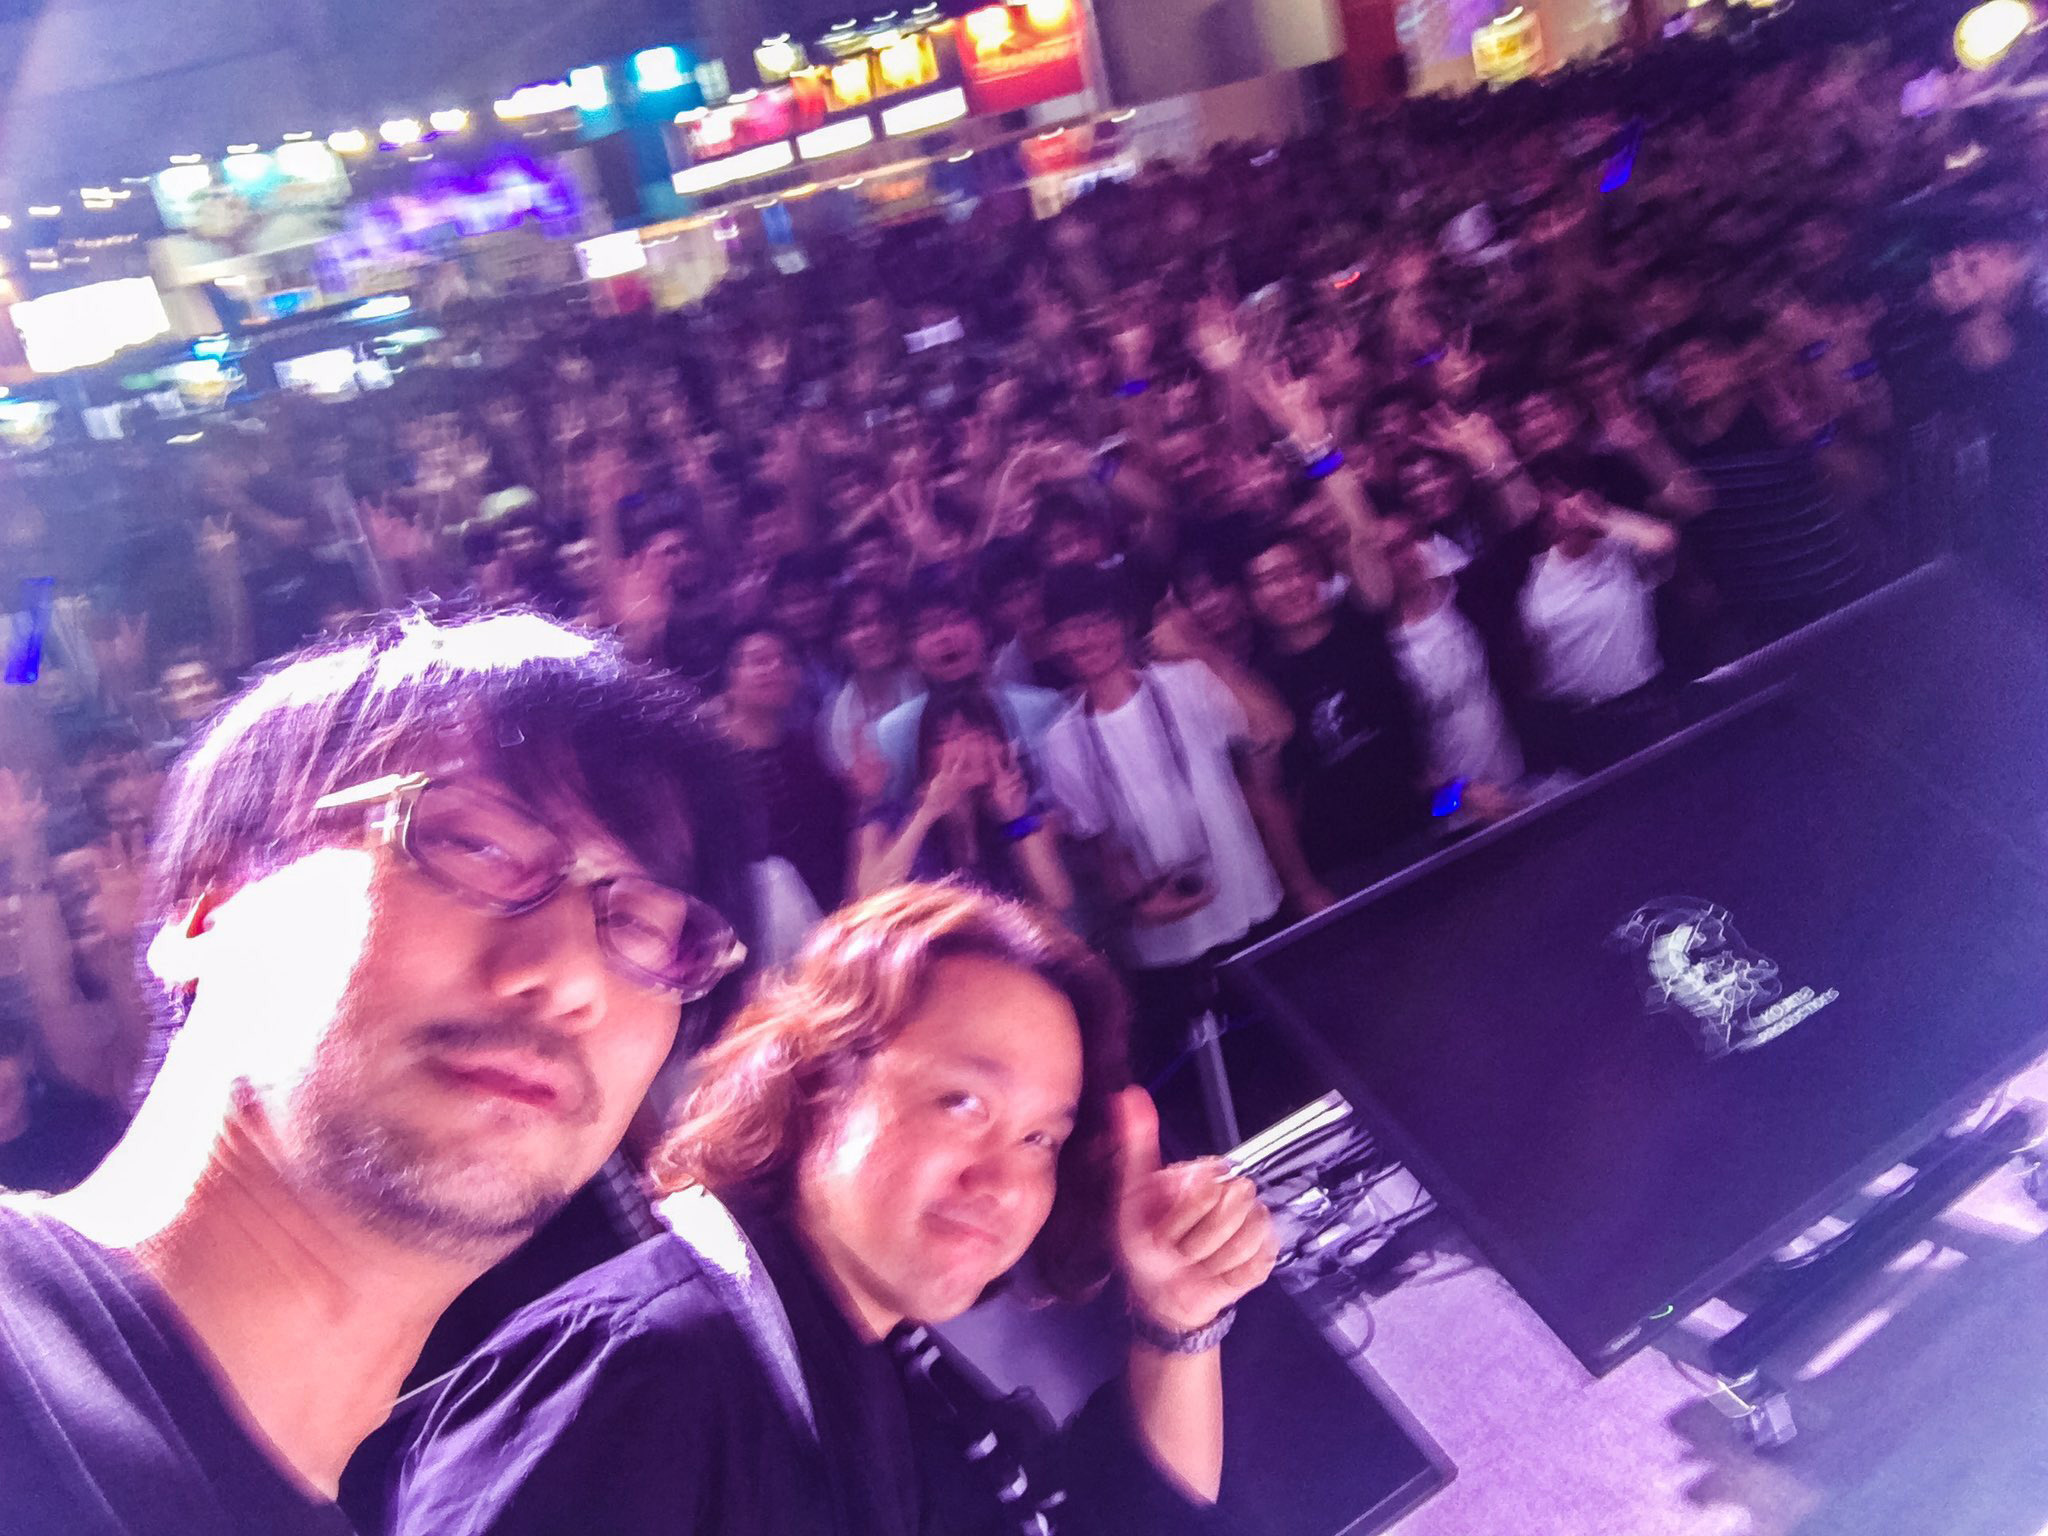 shinkawa-and-kojima-tgs-2016-selfie